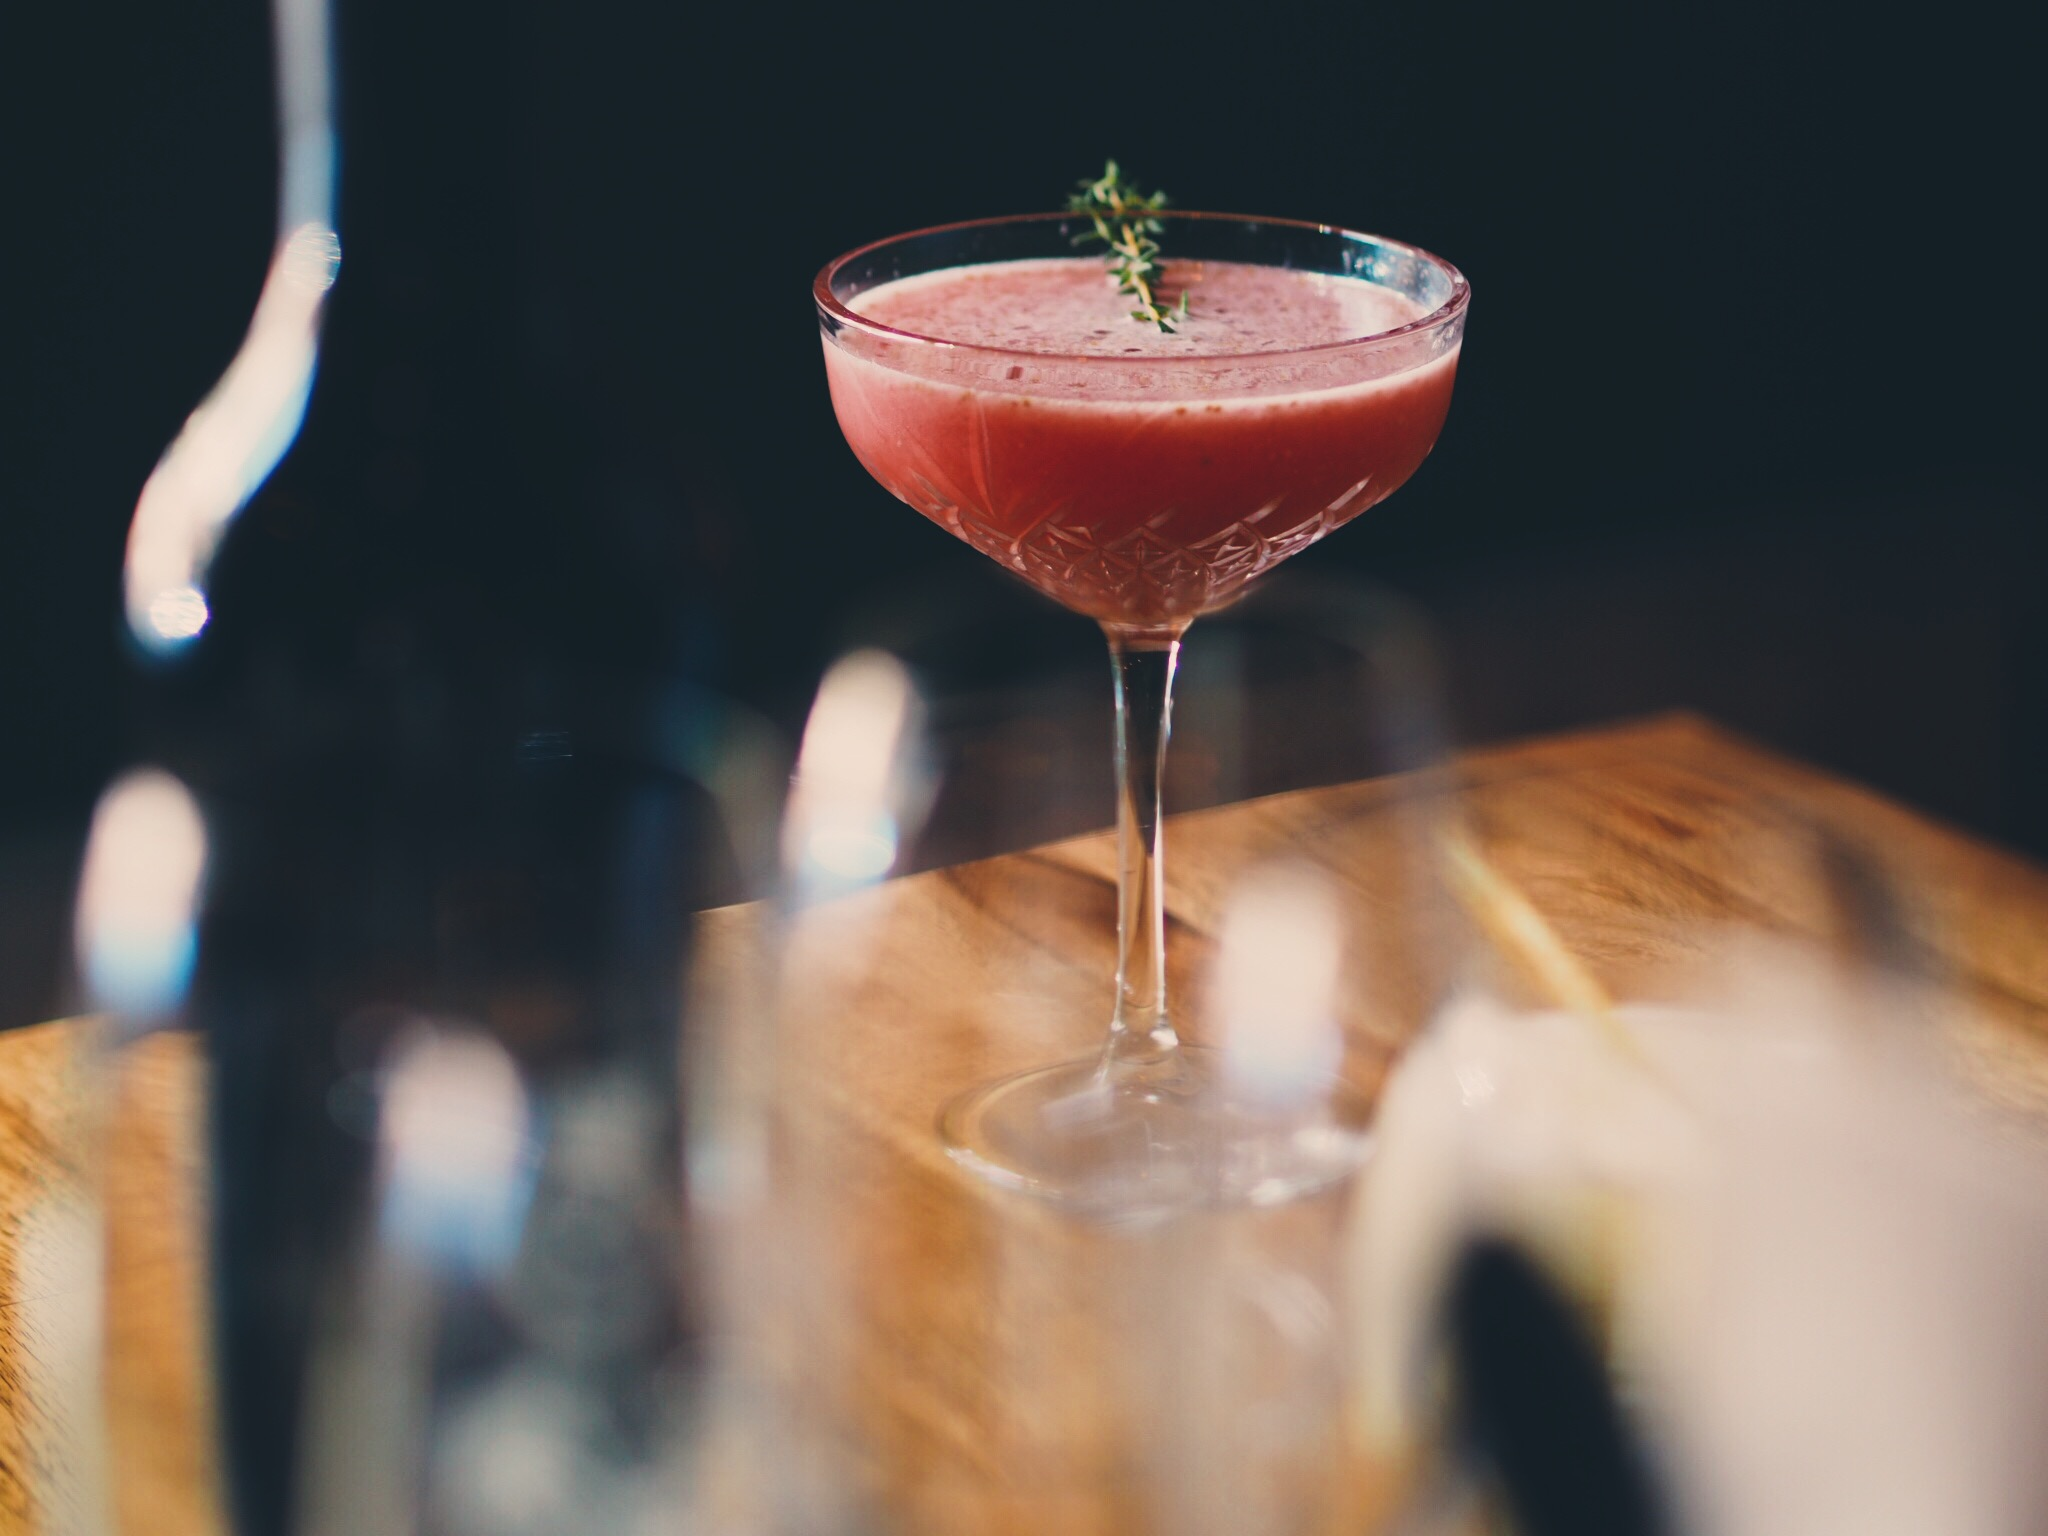 market eating house / small plates and drinks shoot